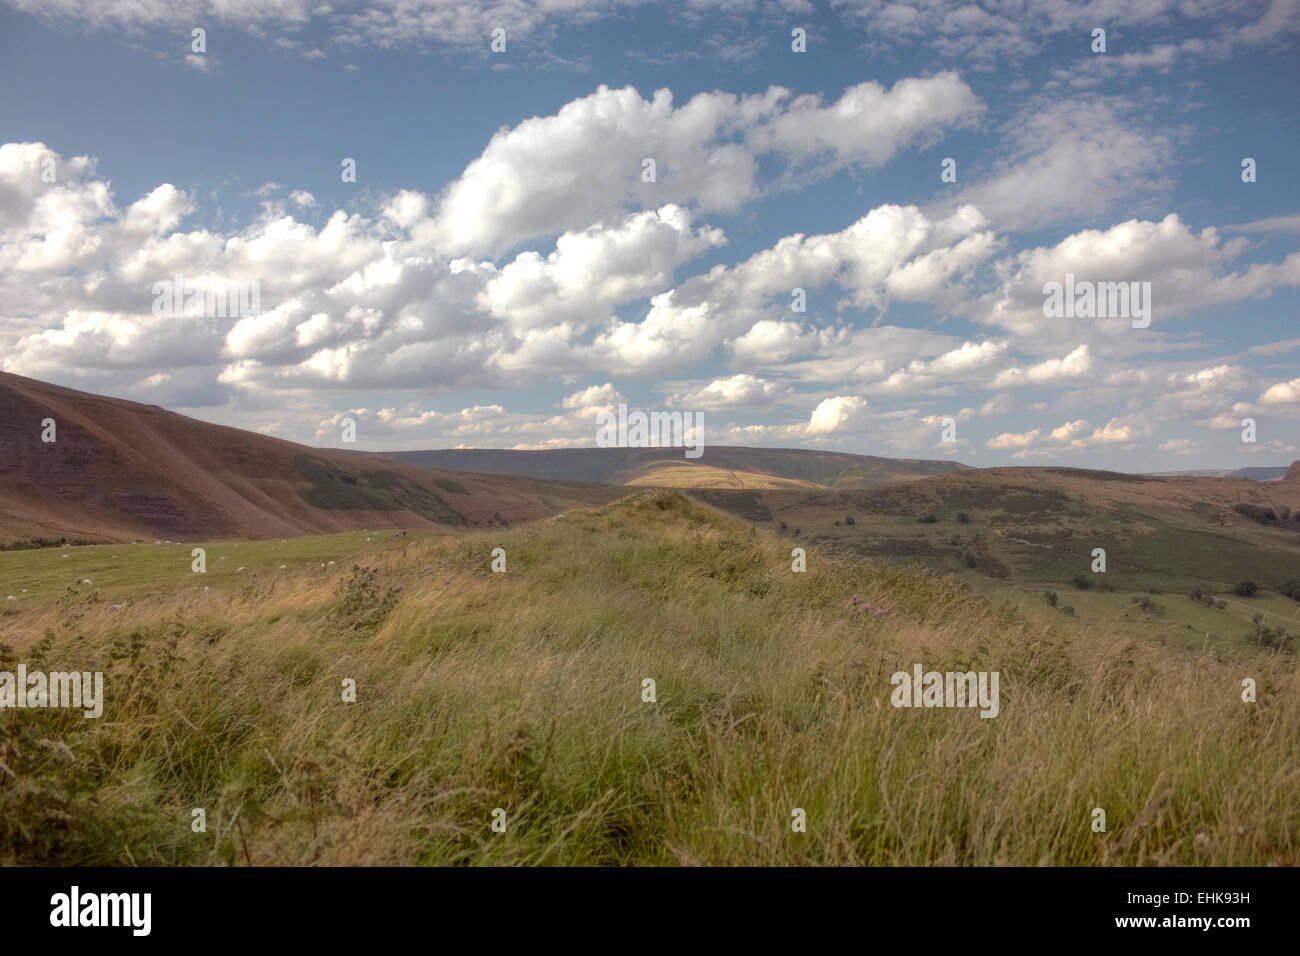 A view of the blue and cloudy sky and distant hills, from the brow of a grassy hill. - Stock Image